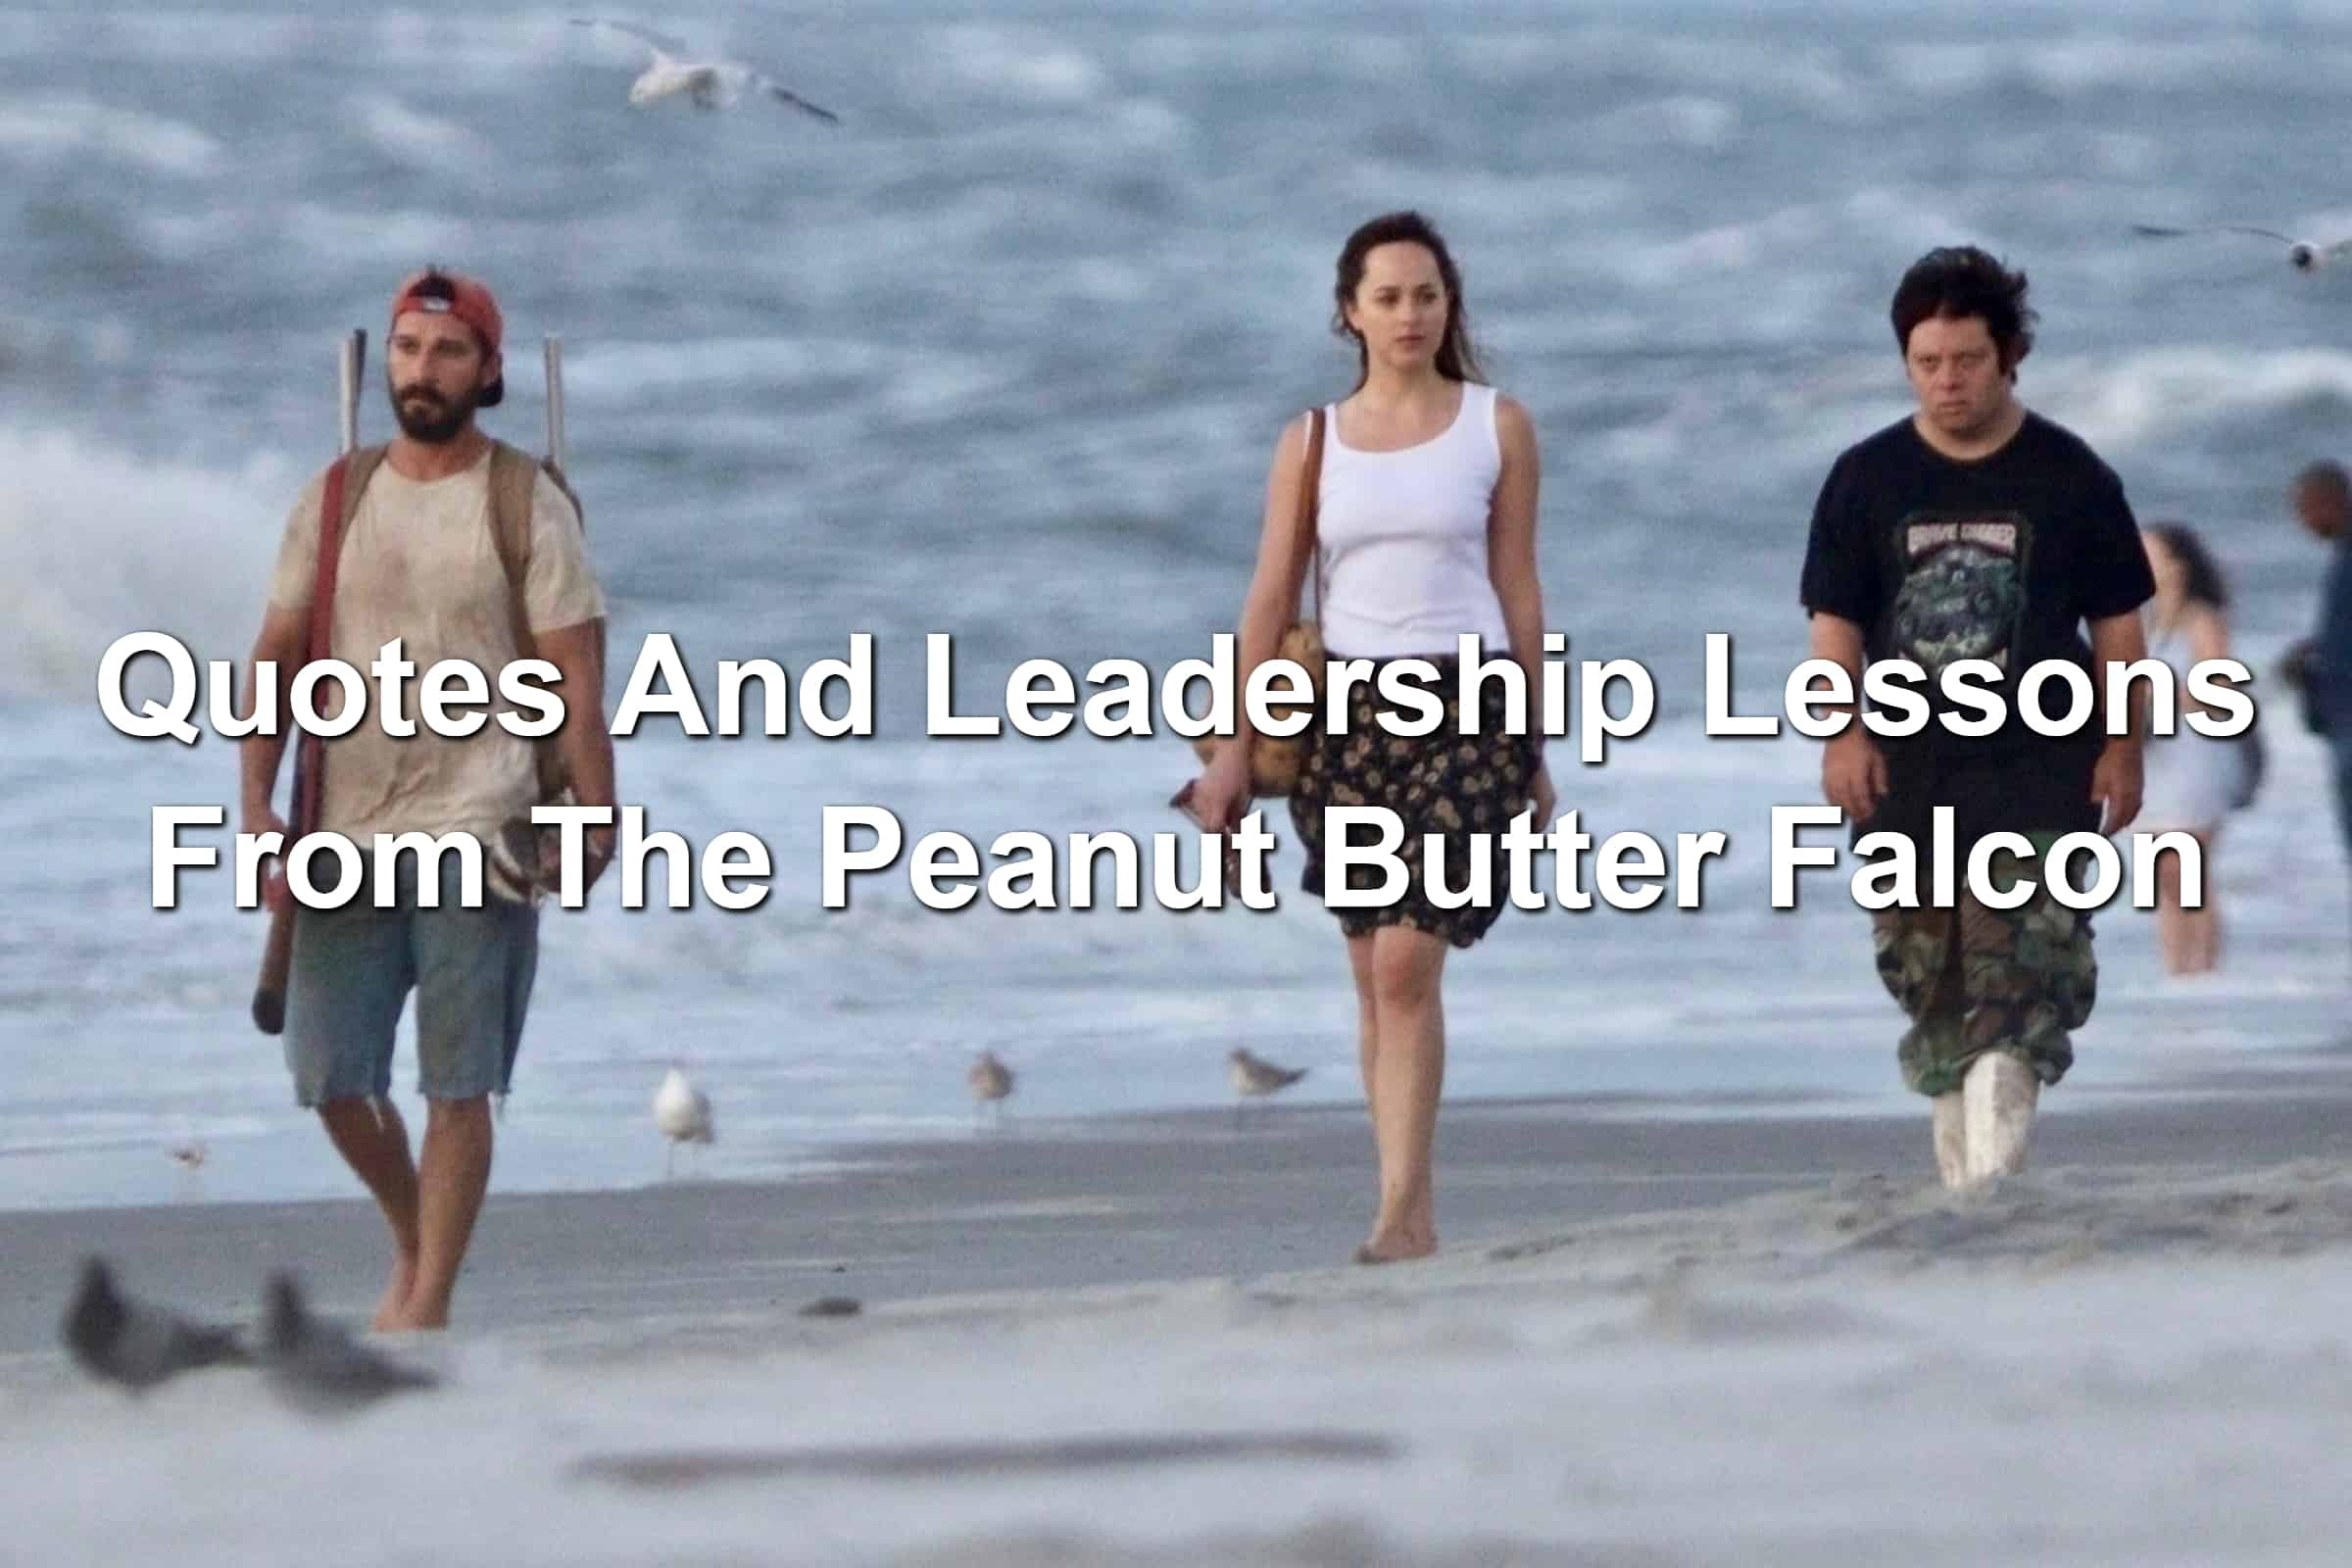 Shia LeBeouf, Dakota Johnson, and Zack Gottsagen walking along a beach in The Peanut Butter Falcon